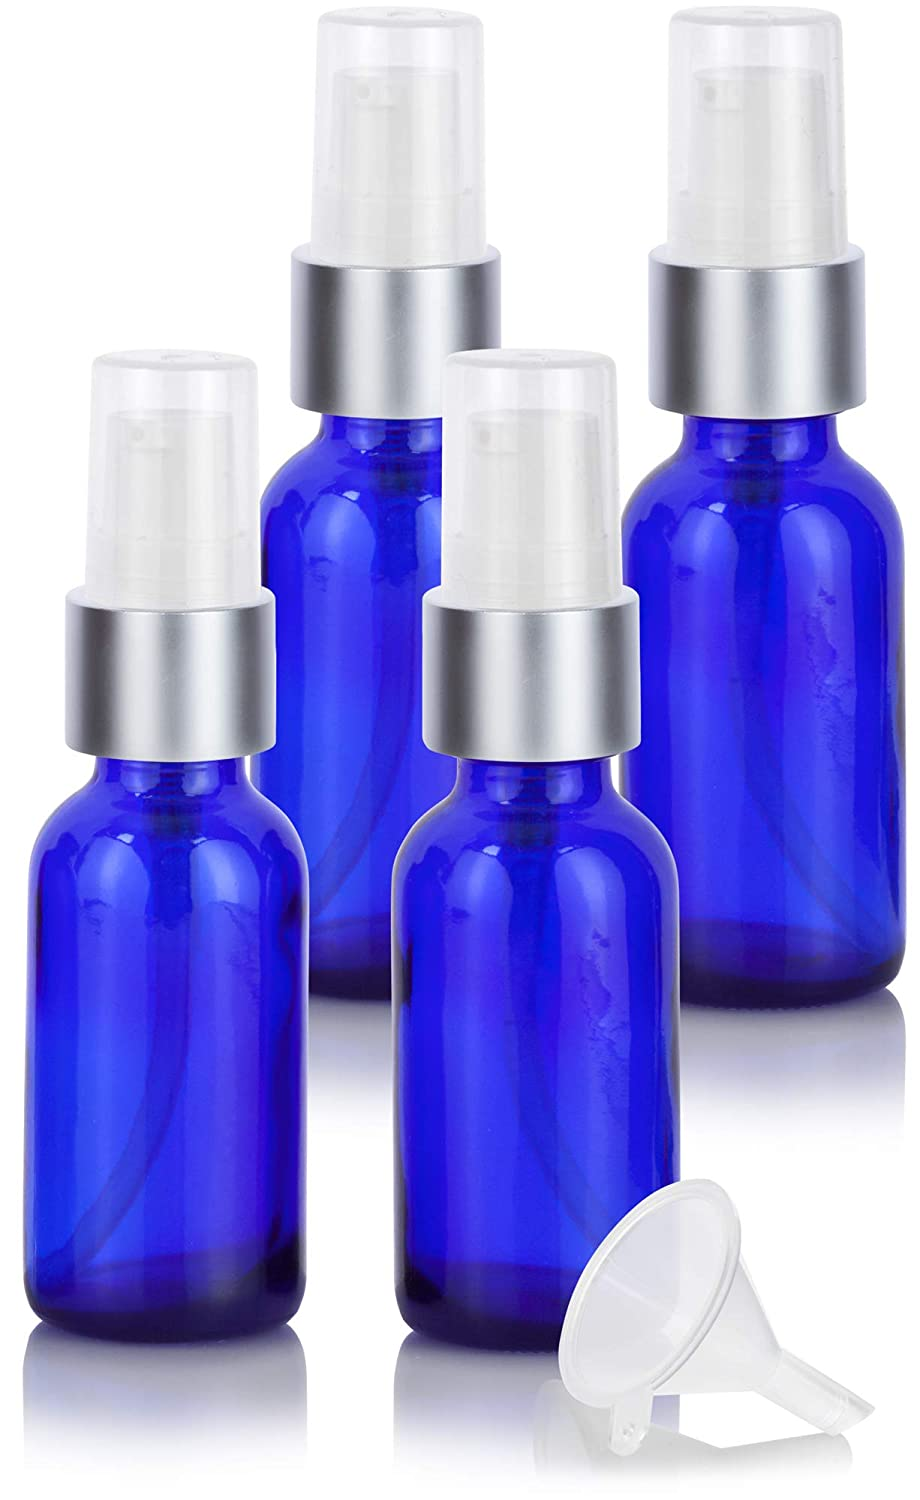 Cobalt Blue Glass Boston Round Silver and White Treatment Pump Bottle – 1 oz 4 Pack Funnel